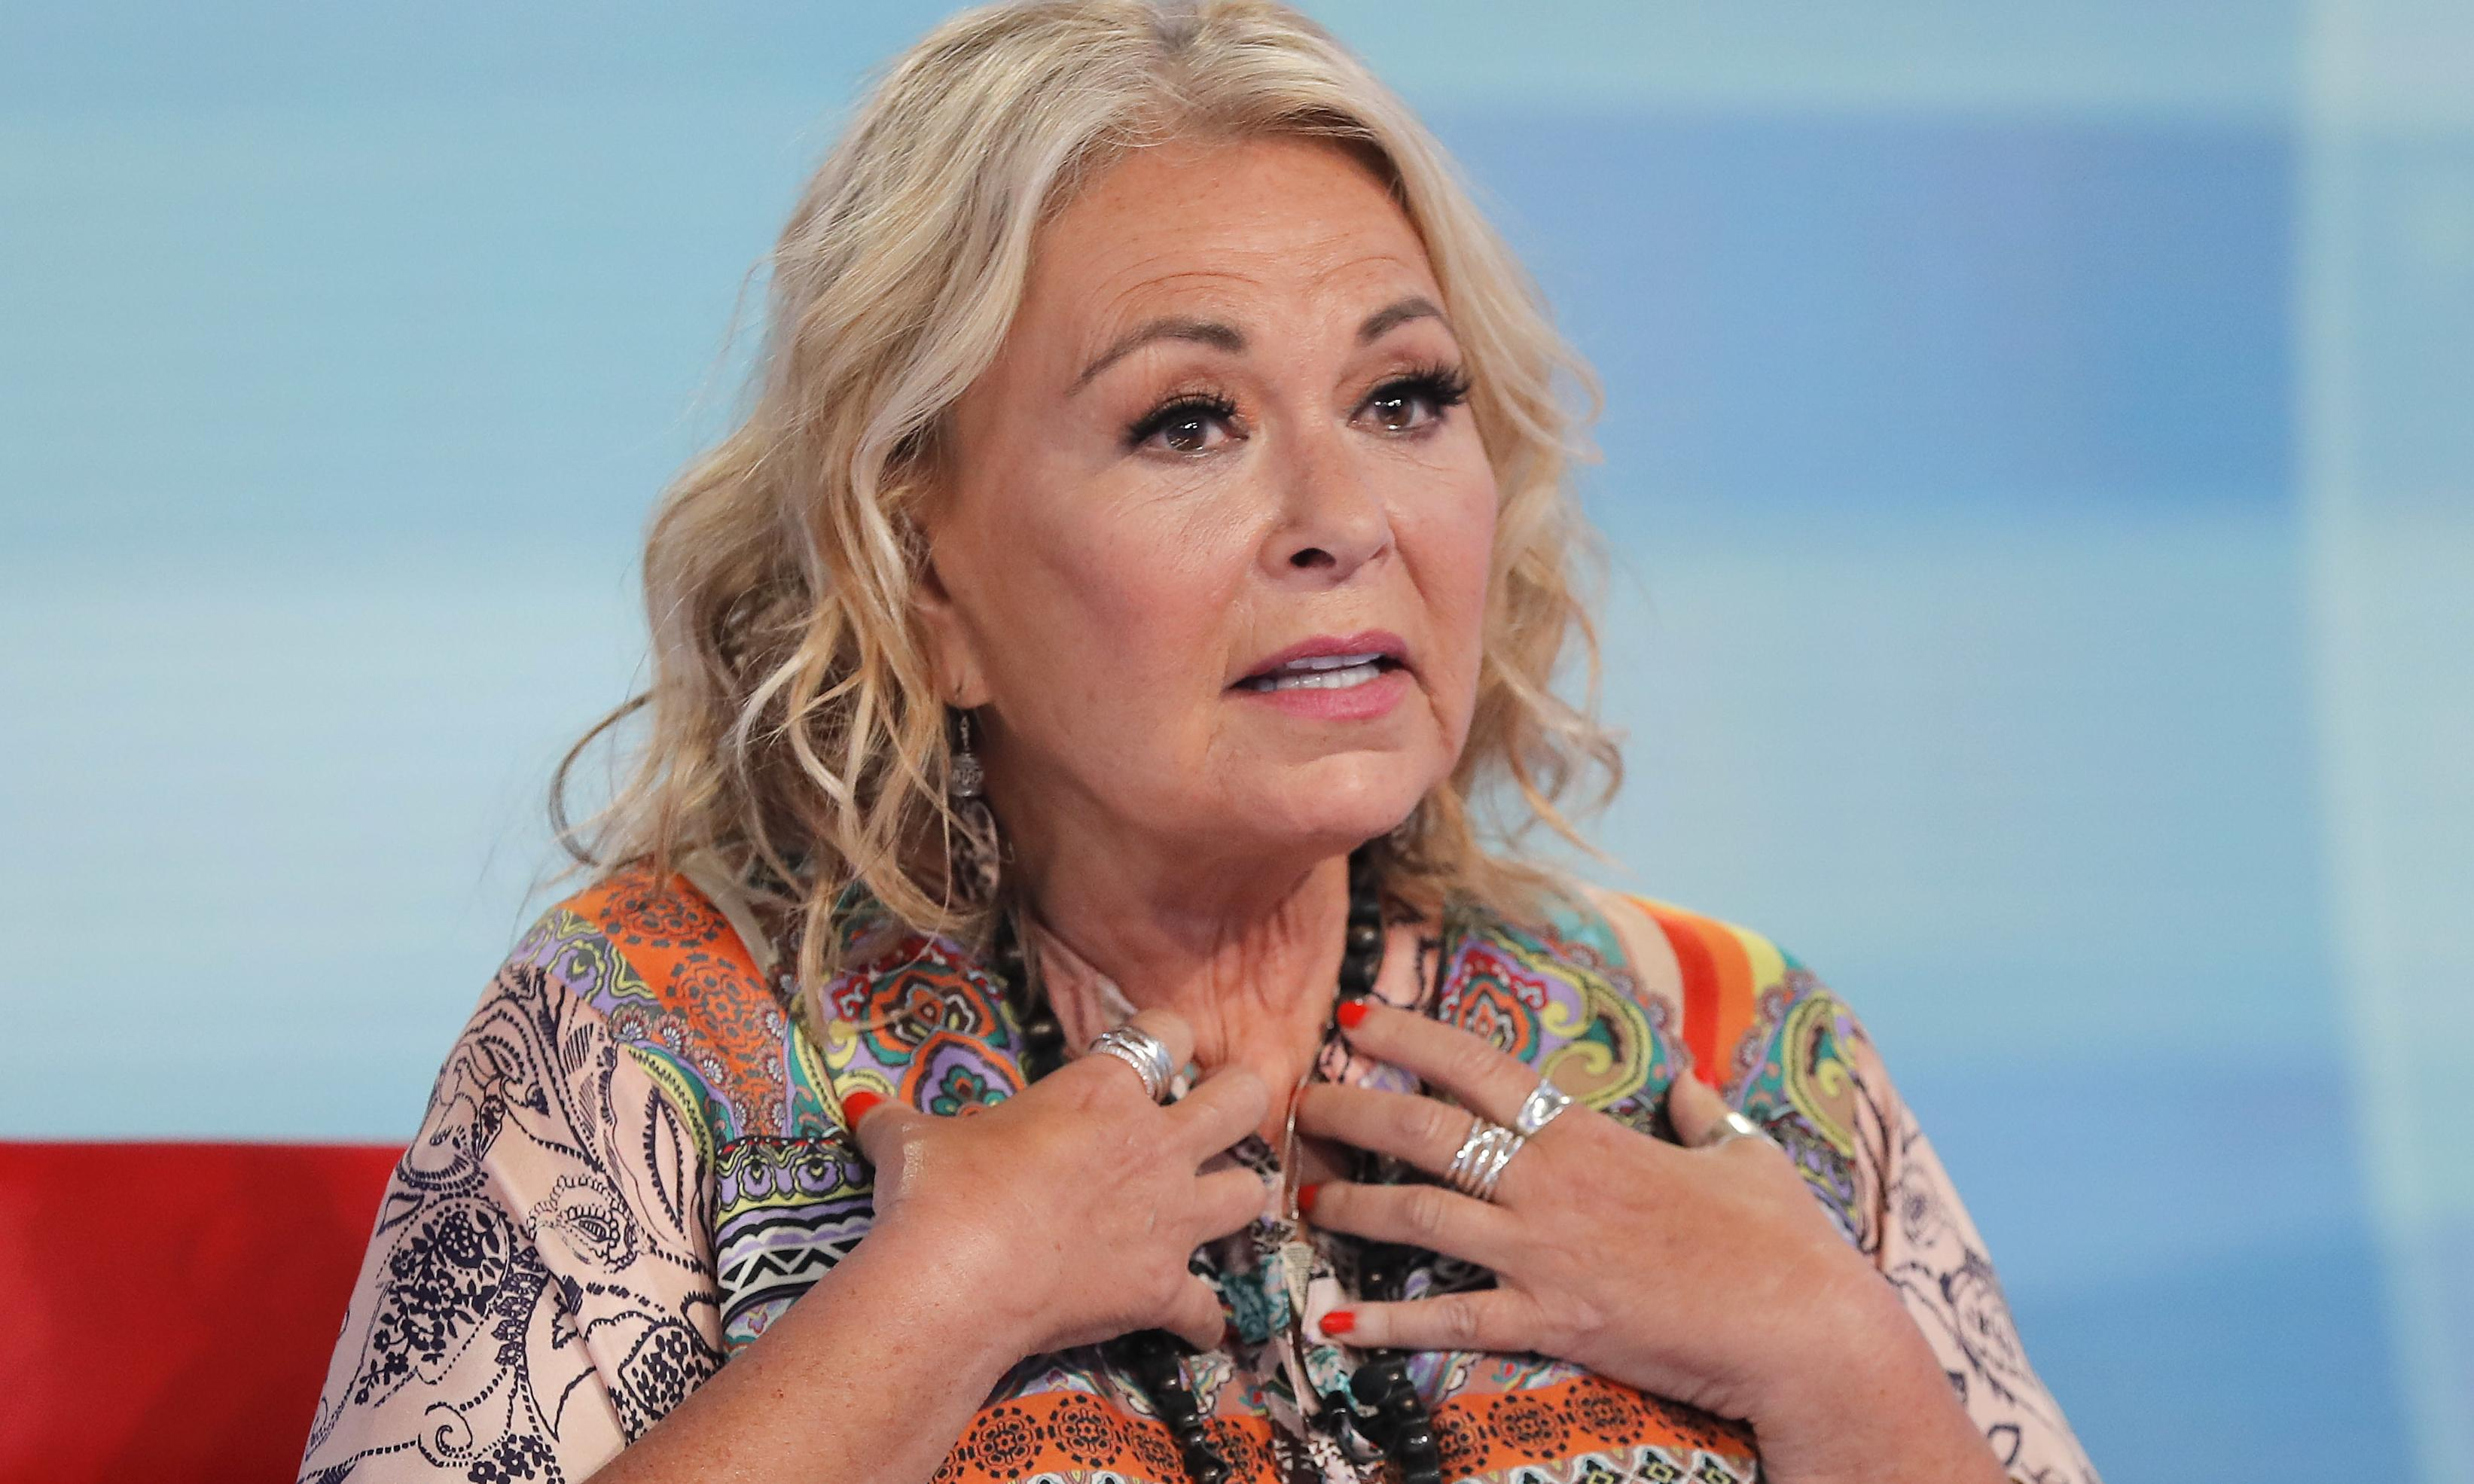 'She destroyed my life': Roseanne Barr blames co-star Sara Gilbert for sitcom's demise